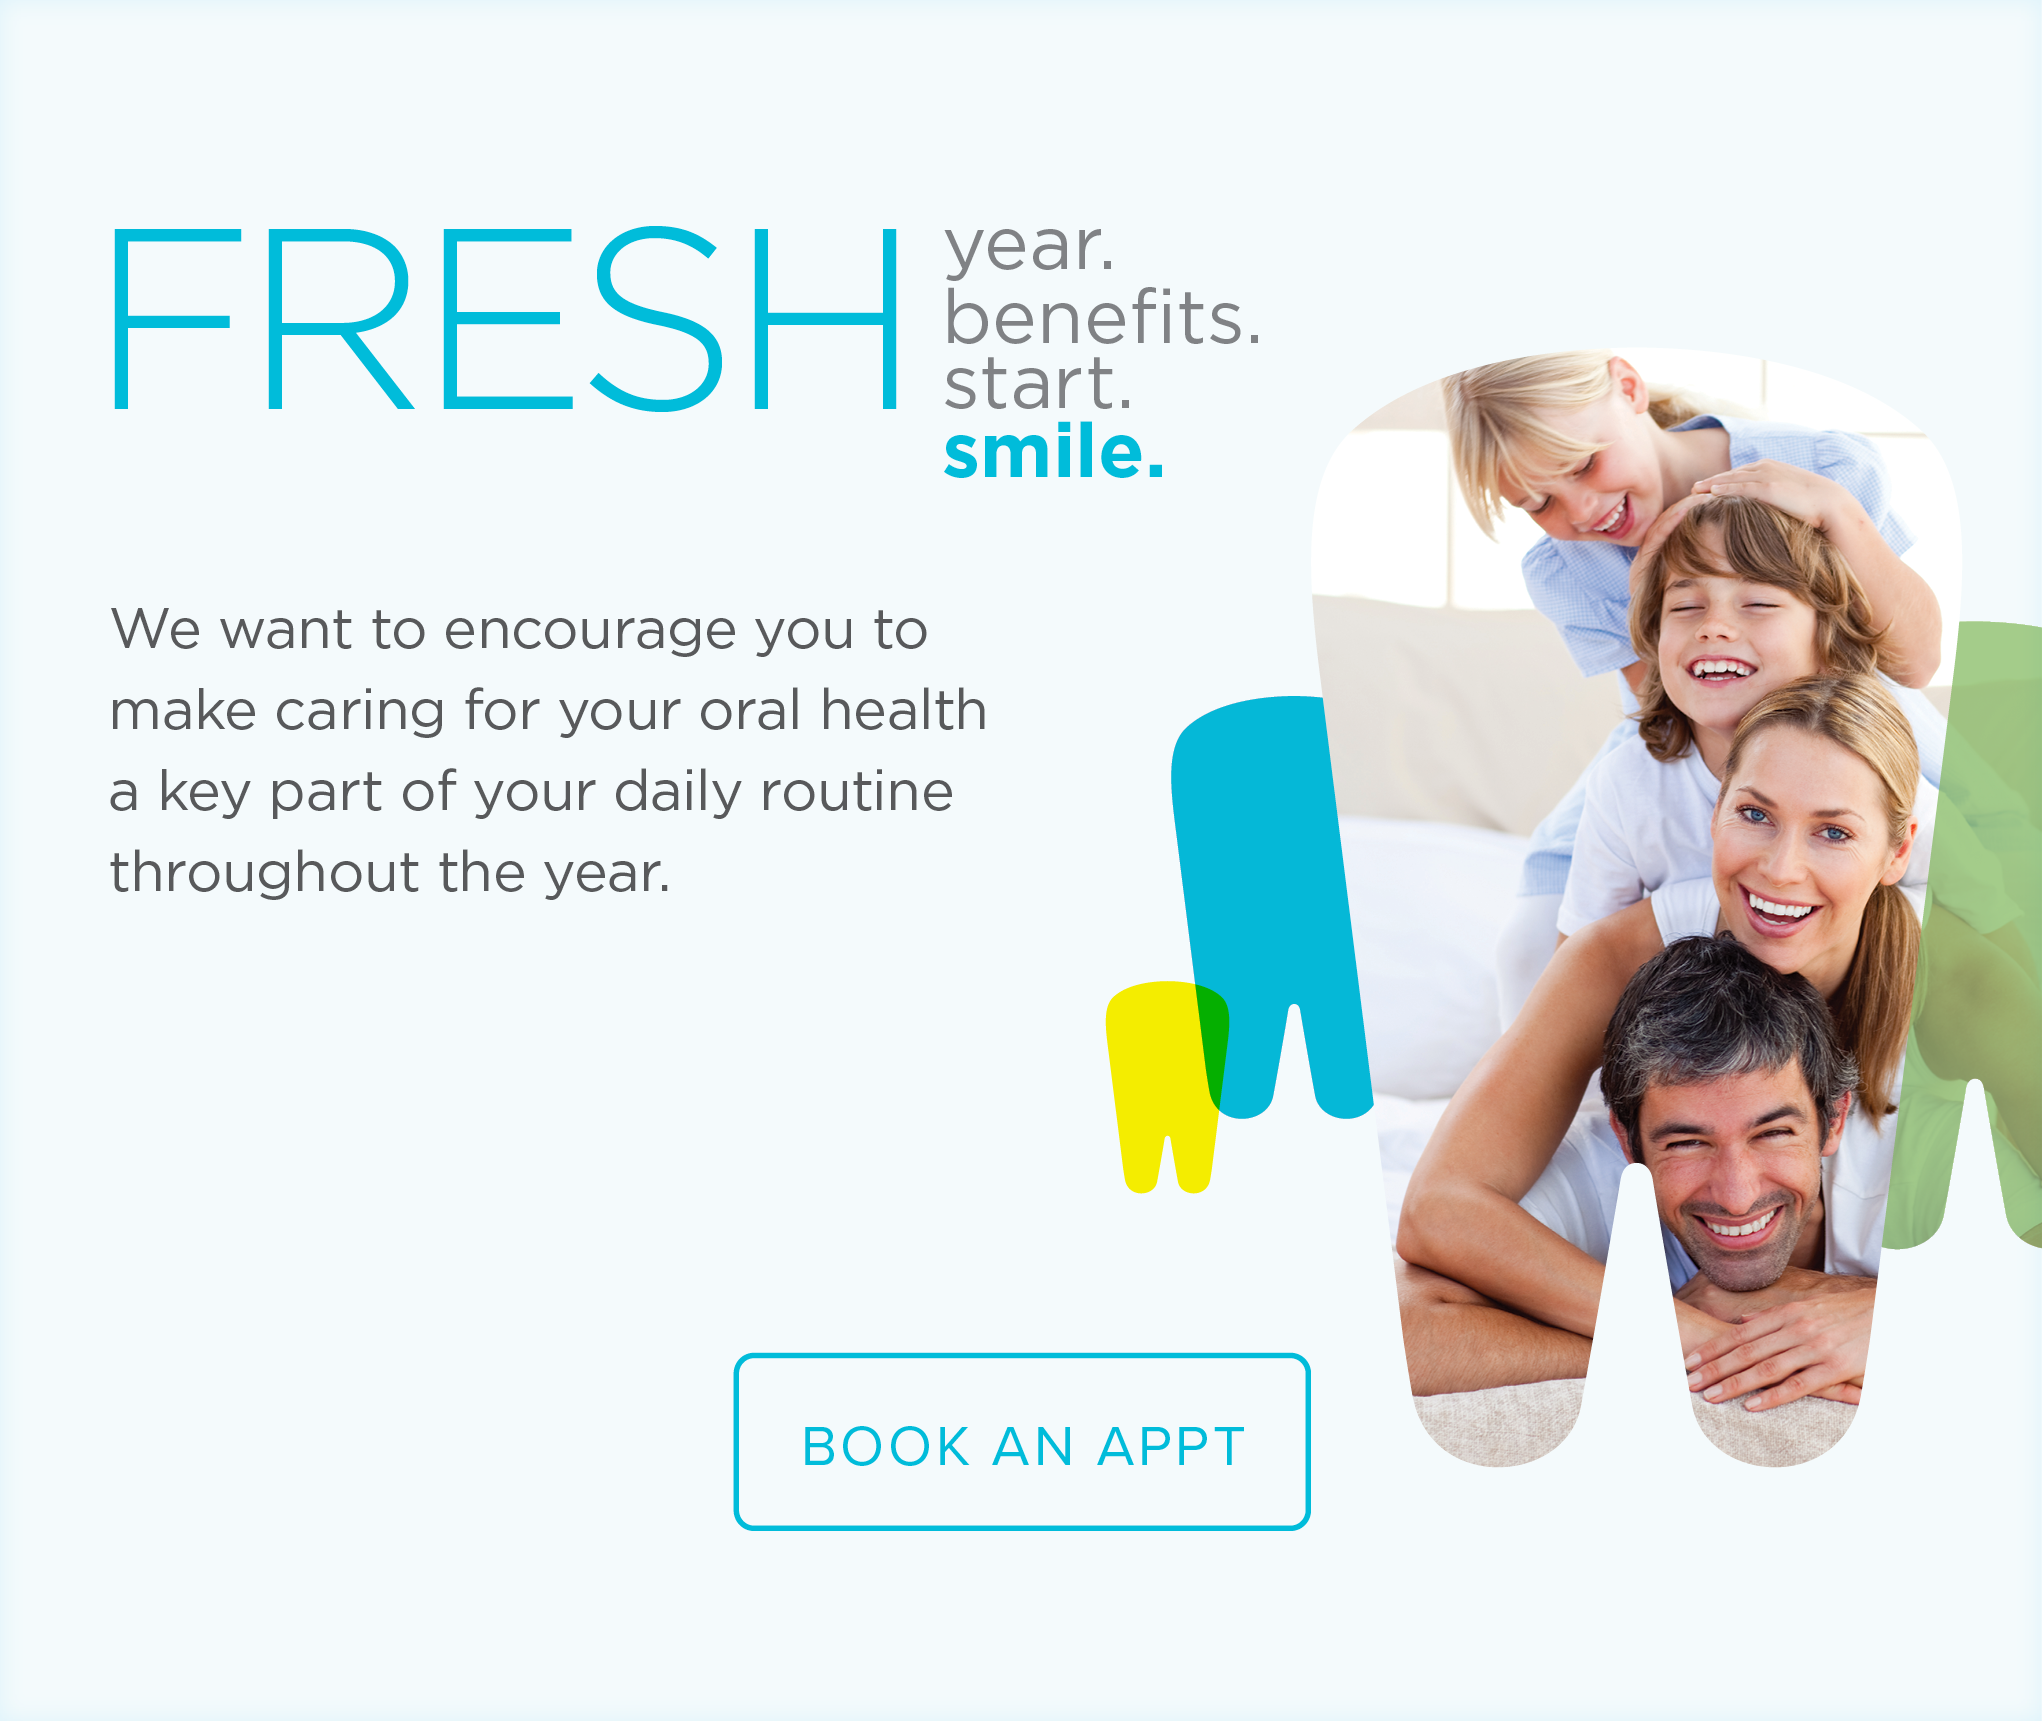 Layton Smiles Dentistry - Make the Most of Your Benefits